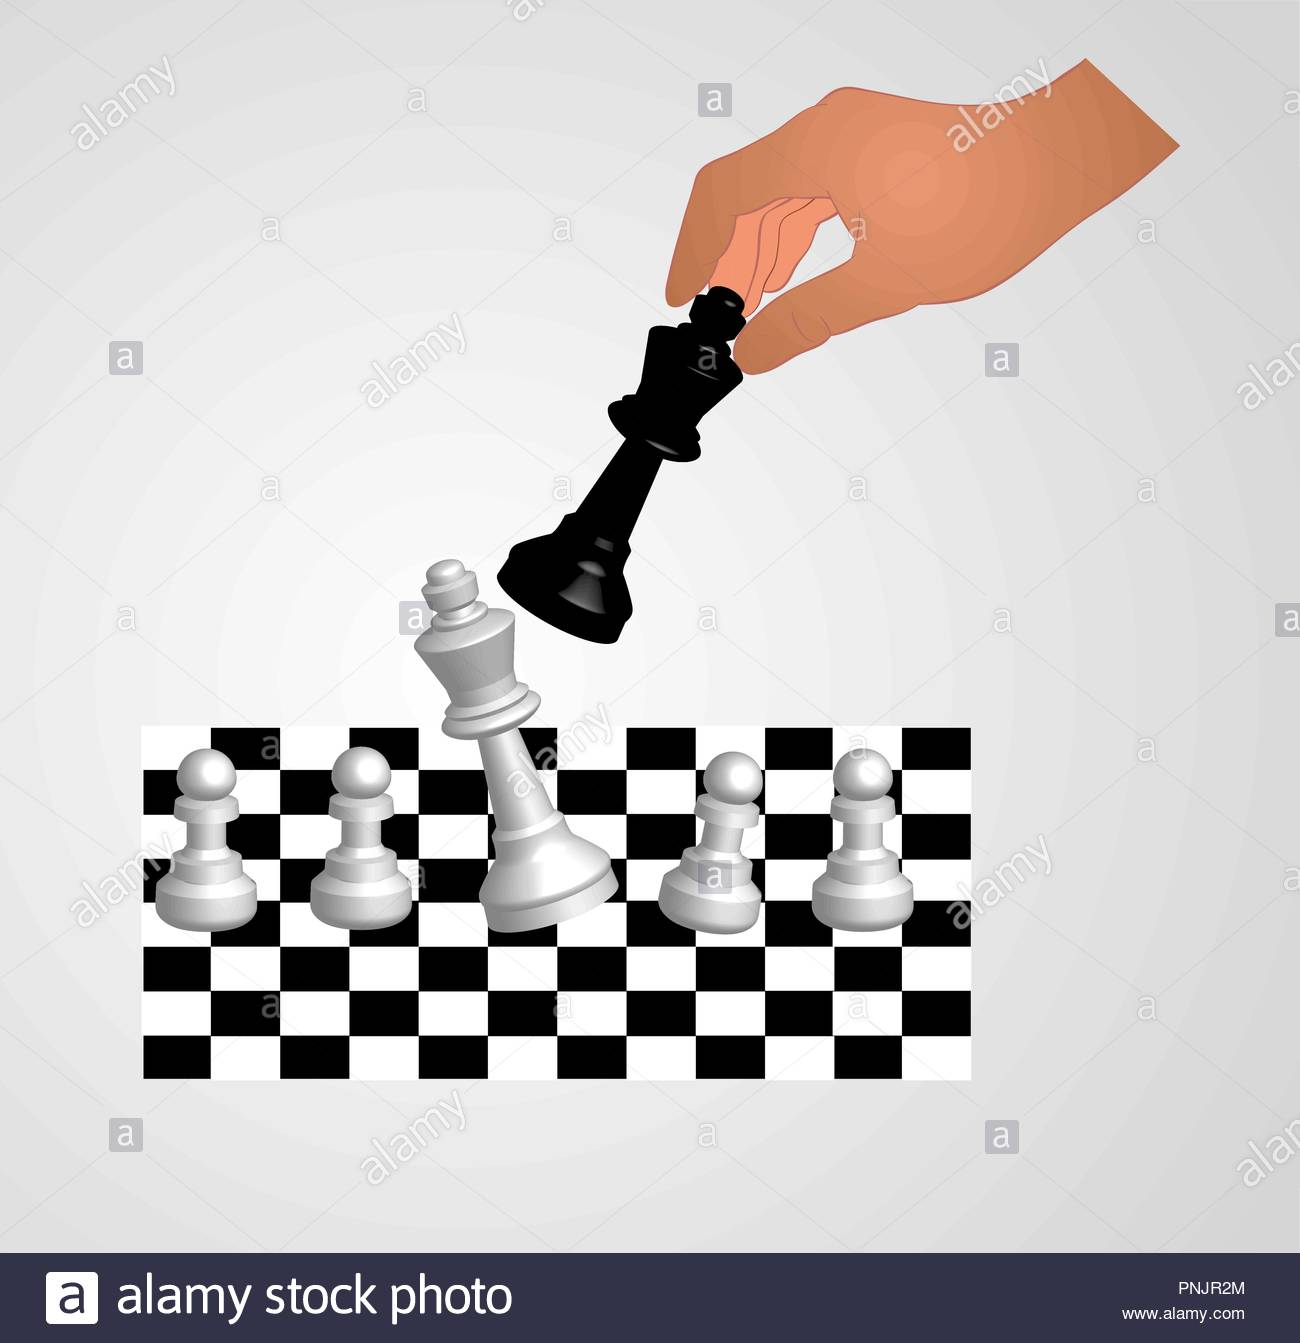 A chess game with hand on final move - Stock Vector